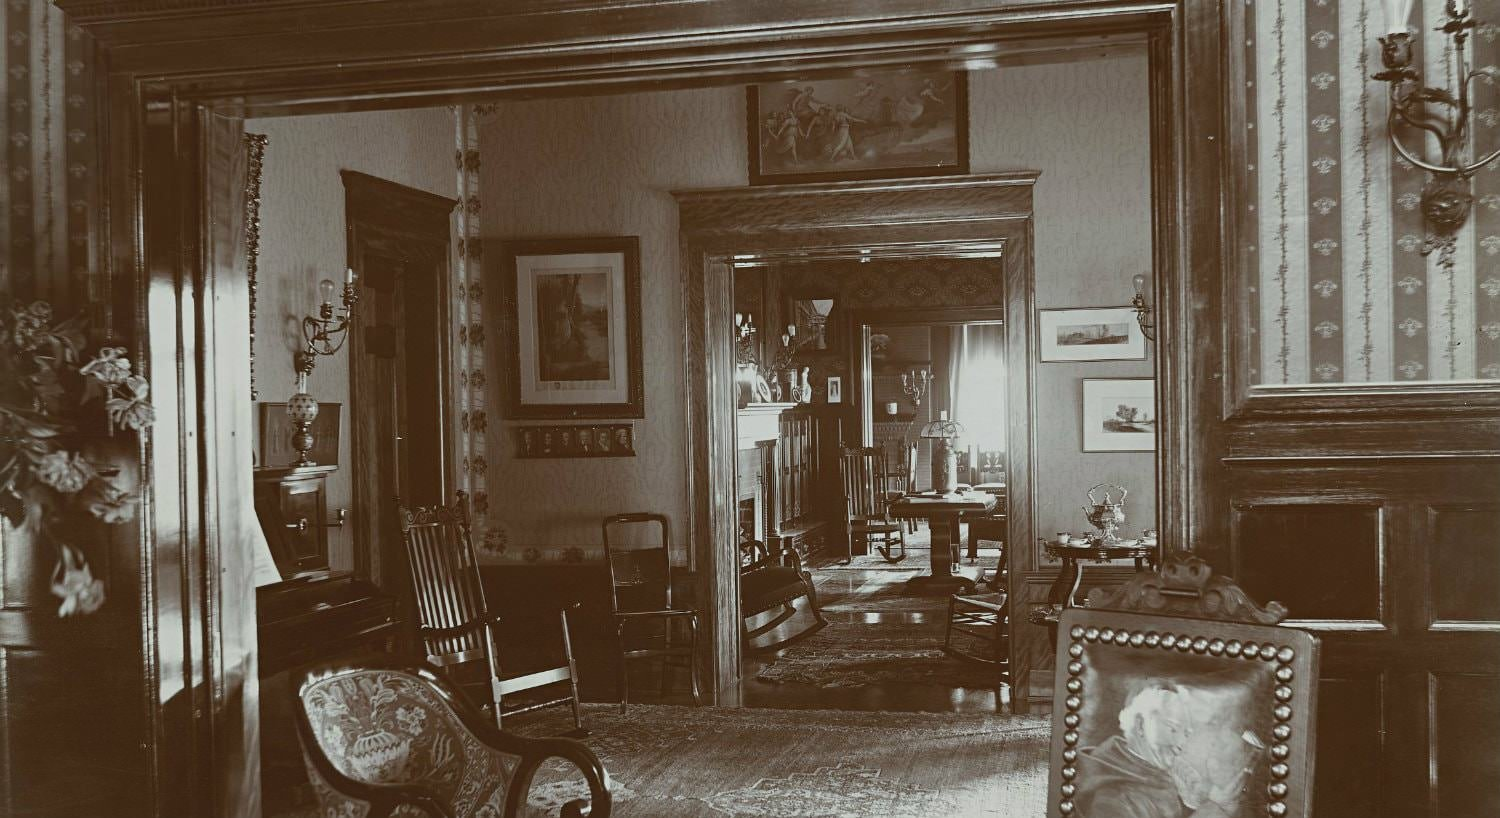 Old black and white photo of three connecting rooms with wide wood trim, wood floors, sconce lighting and wood furniture